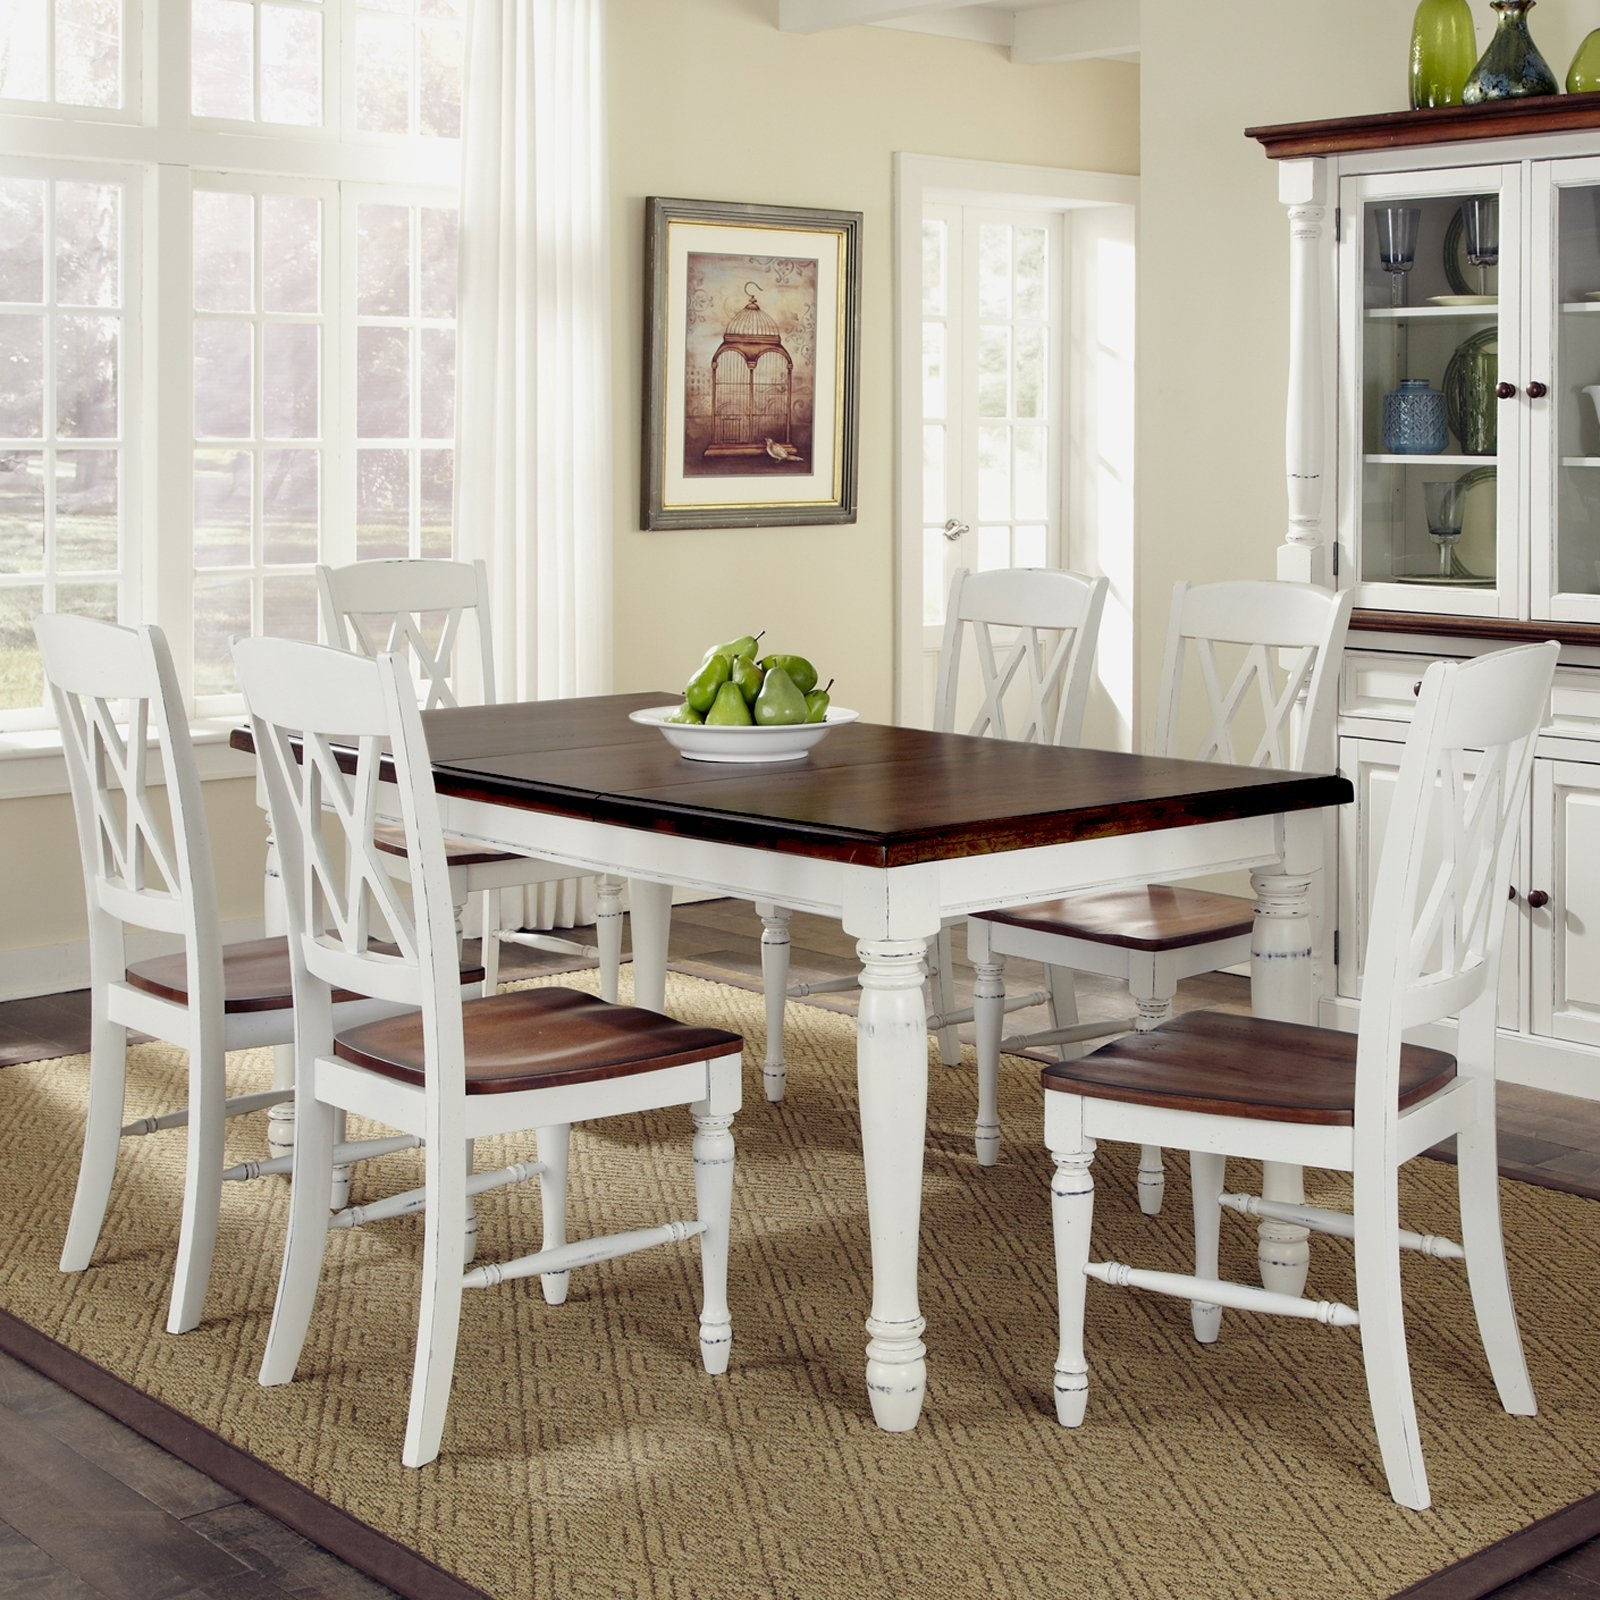 Home Styles Monarch Rectangular Dining Table And 6 Double X Back Regarding Most Up To Date Dining Table Chair Sets (Gallery 10 of 25)